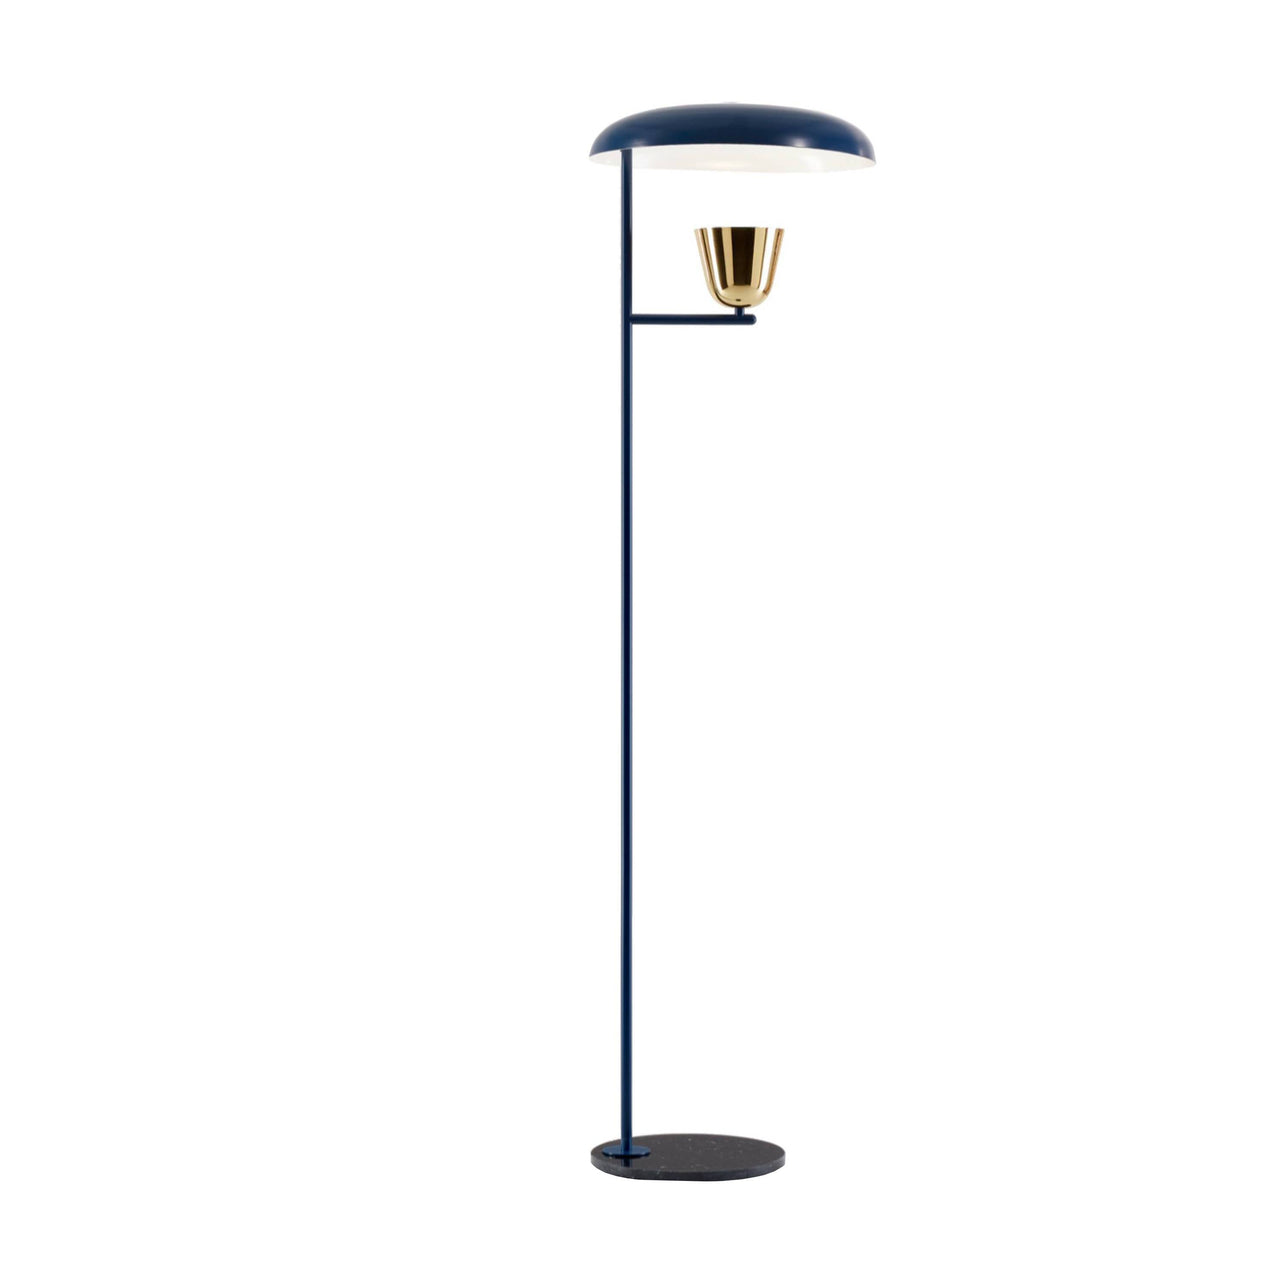 Lightolight Floor Lamp: Blue + Brushed Brass